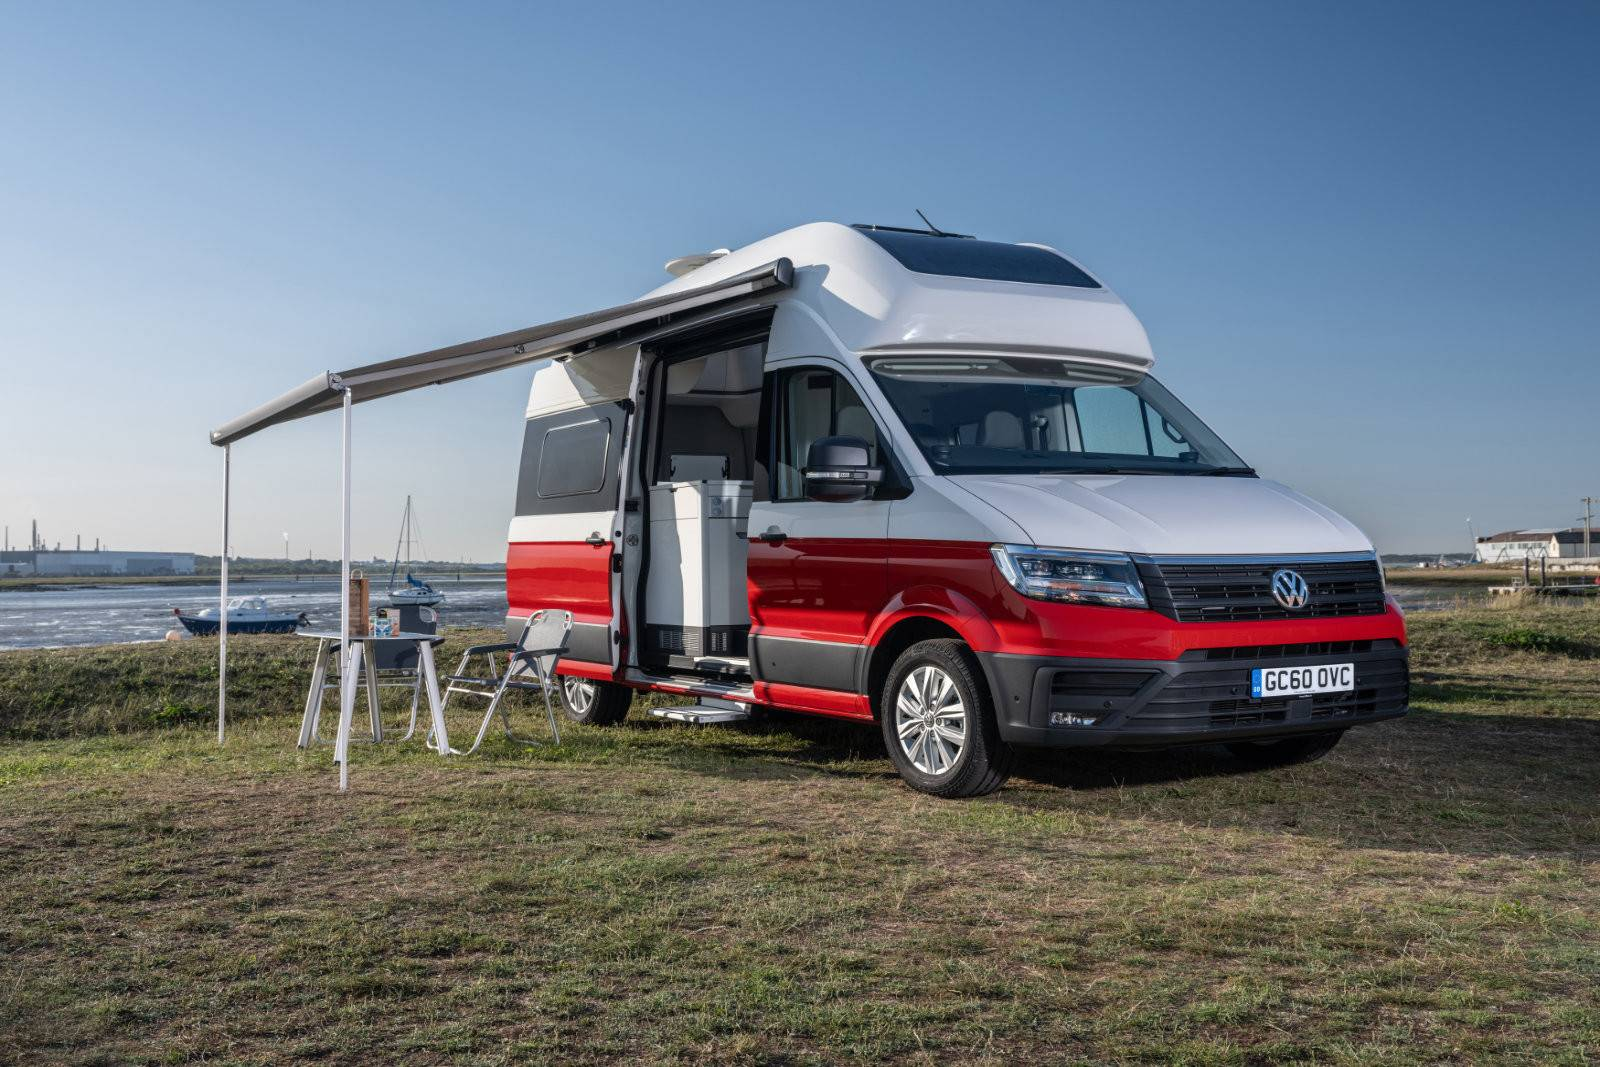 A VW Grand California Campervan called Elke and for hire in faro, Portugal